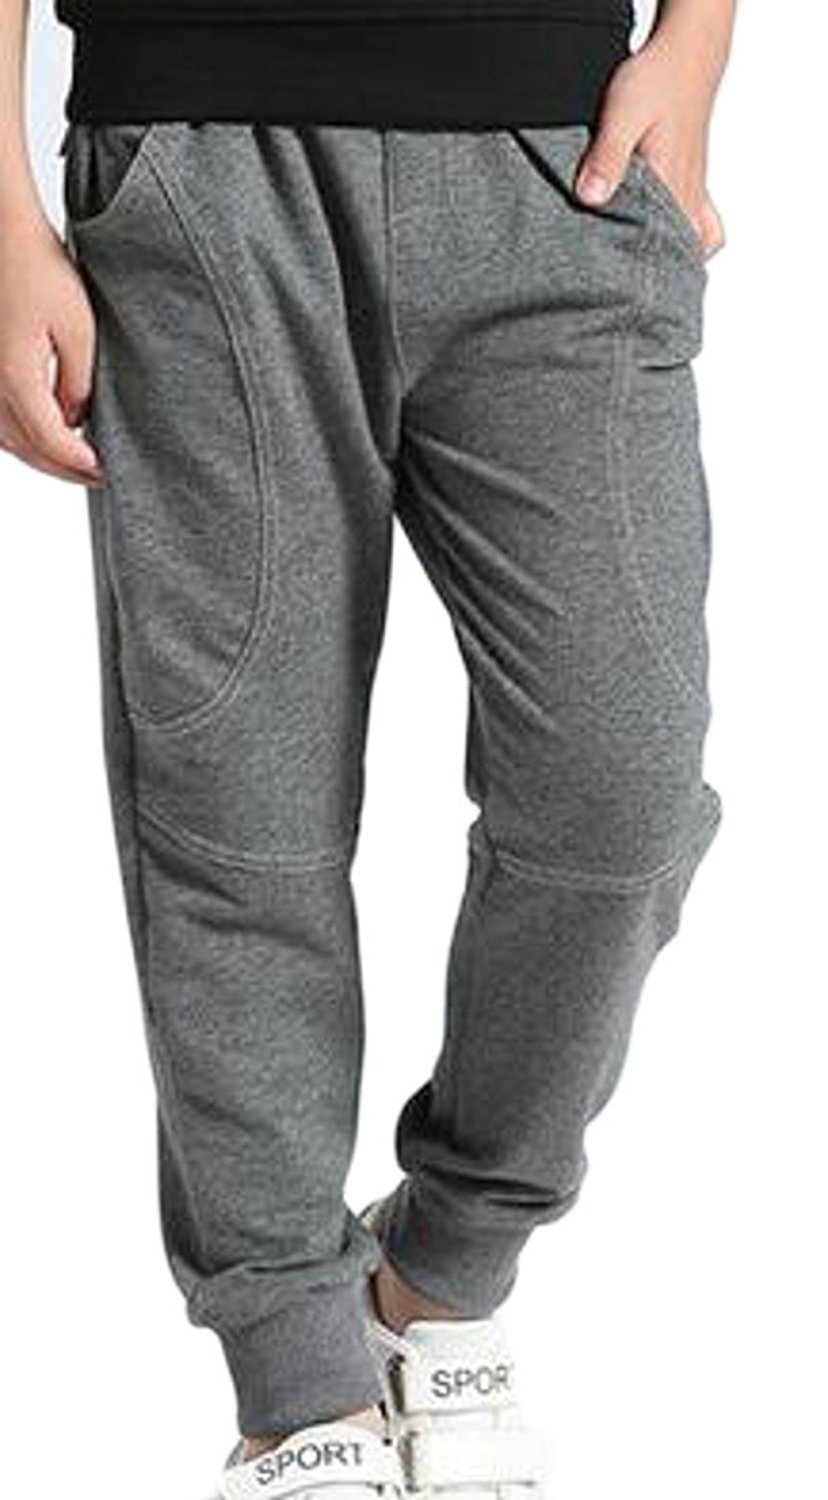 Boys or Girls 1pc or 2Pck Cozy Soft Lined JAN /& JUL Sweatpants Joggers for Baby Toddler Kids